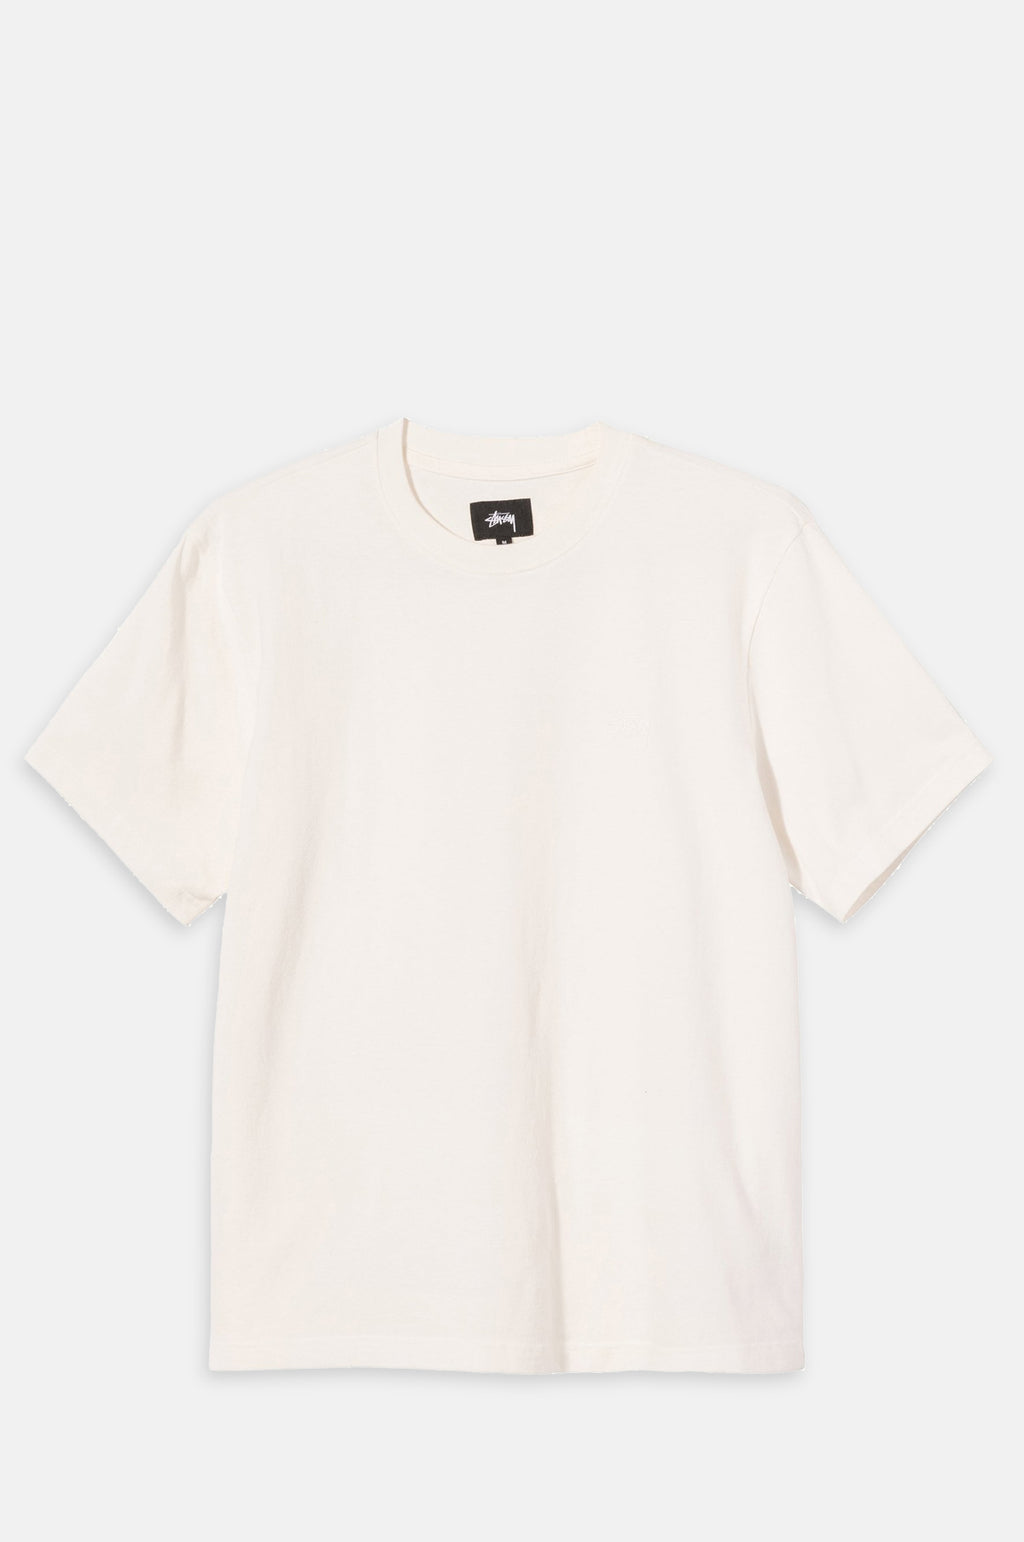 Stock Logo Short Sleeve Crew T Shirt in Natural